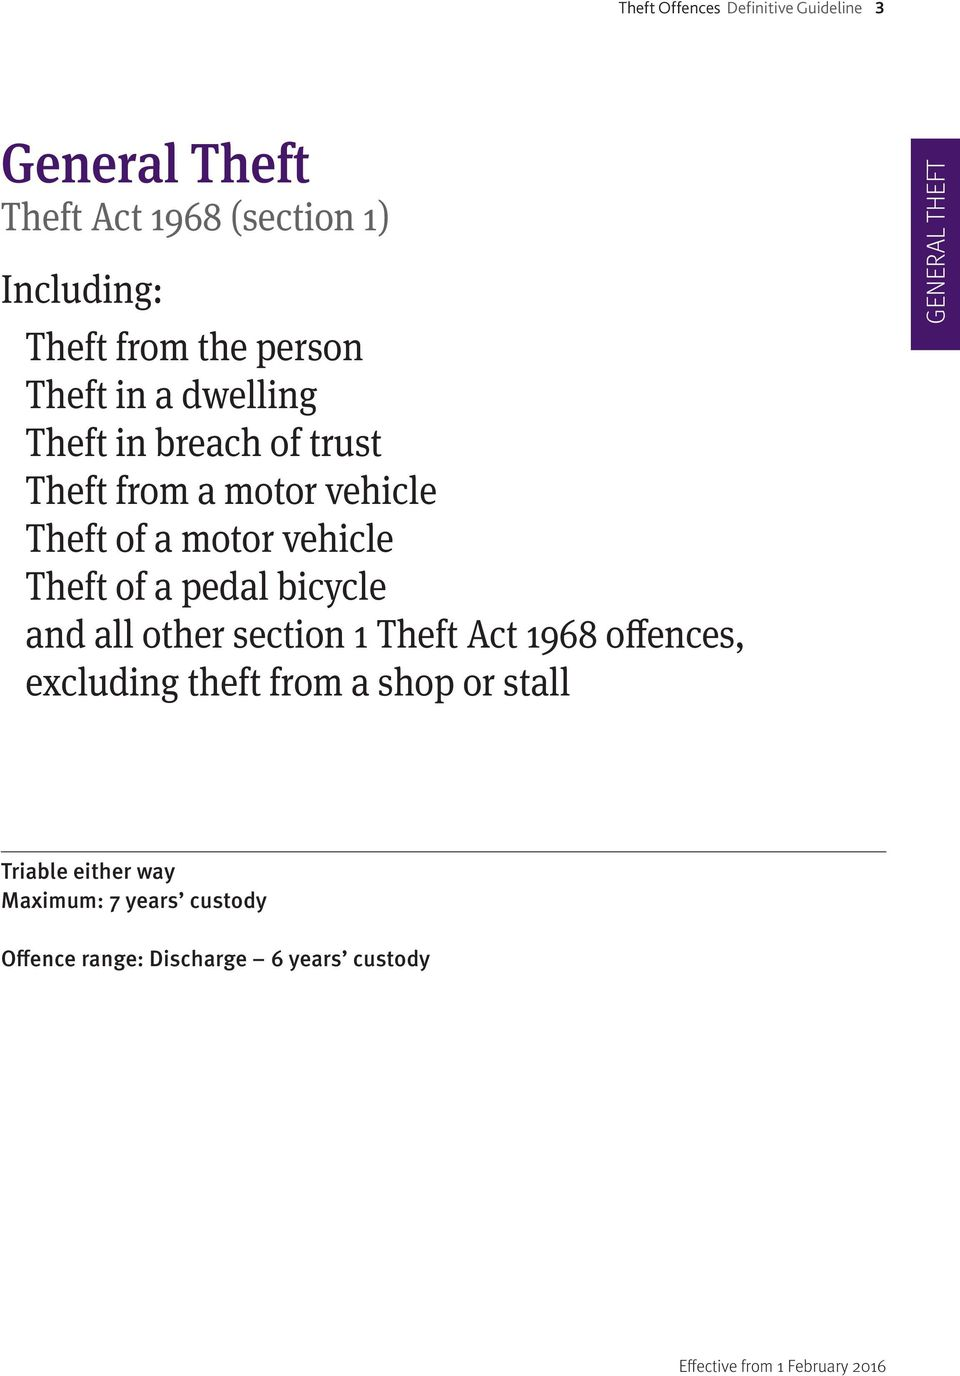 Theft of a pedal bicycle and all other section 1 Theft Act 1968 offences, excluding theft from a shop or